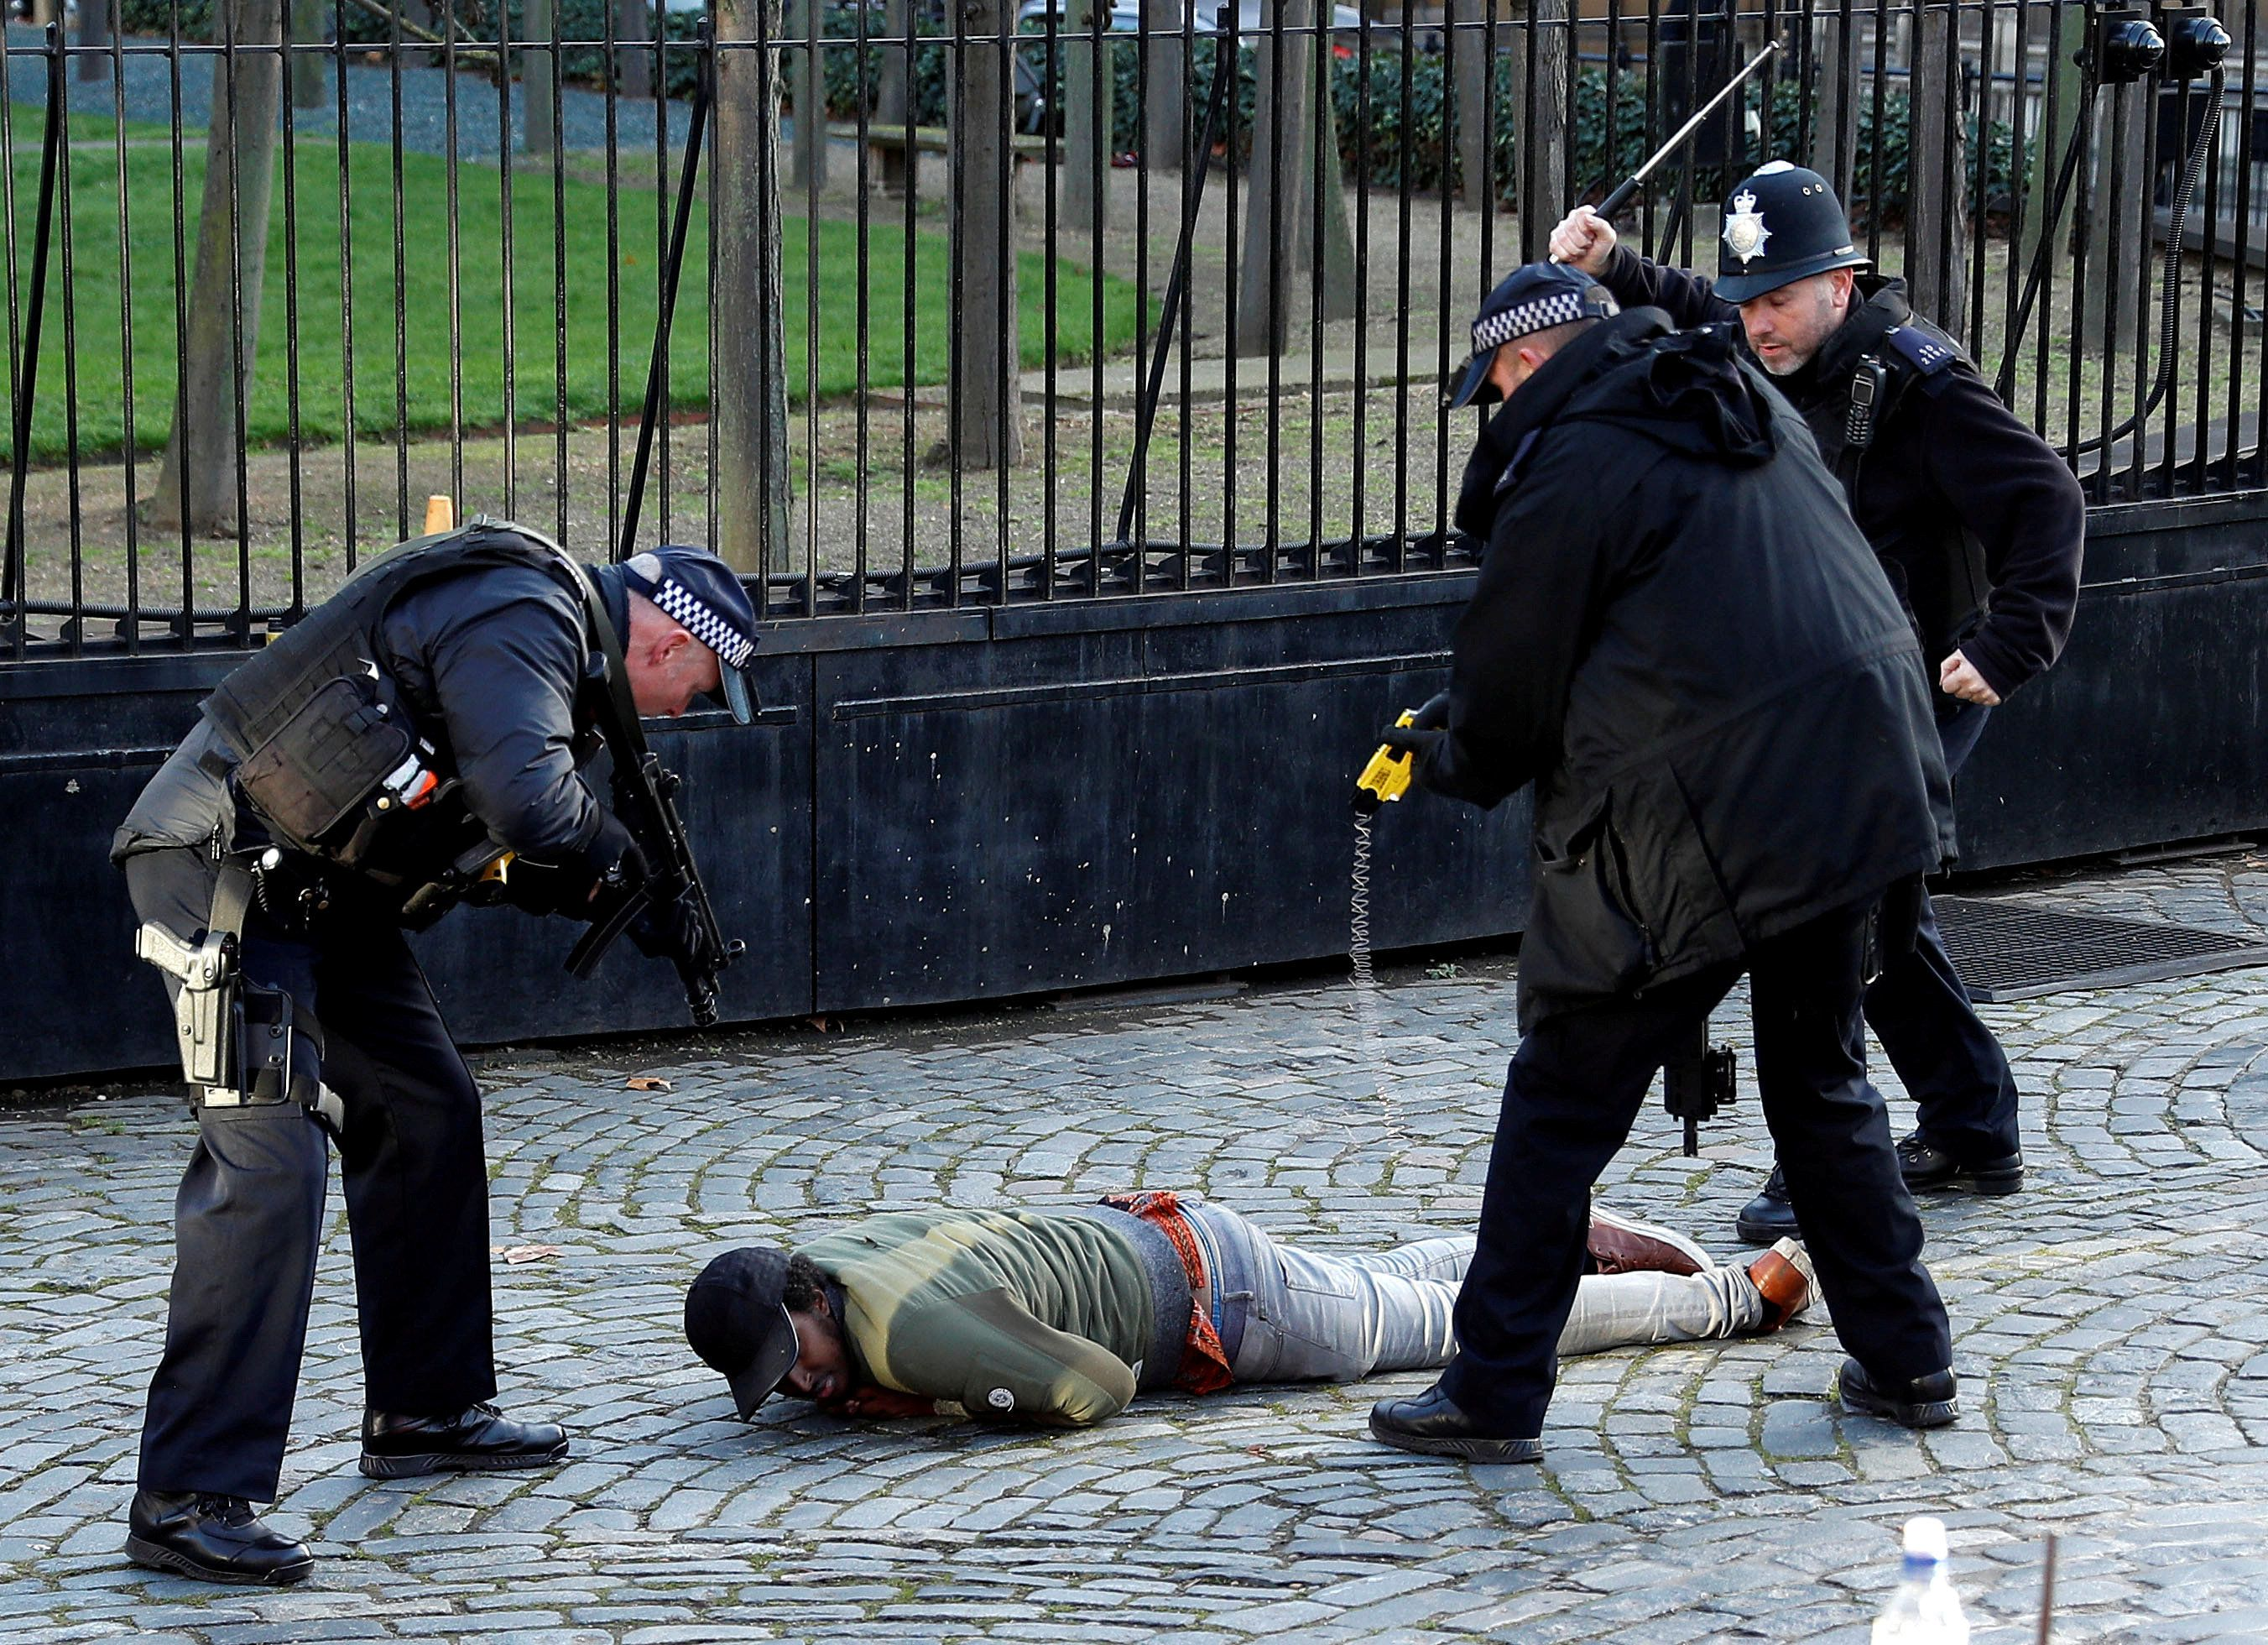 Armed police detain man outside British parliament